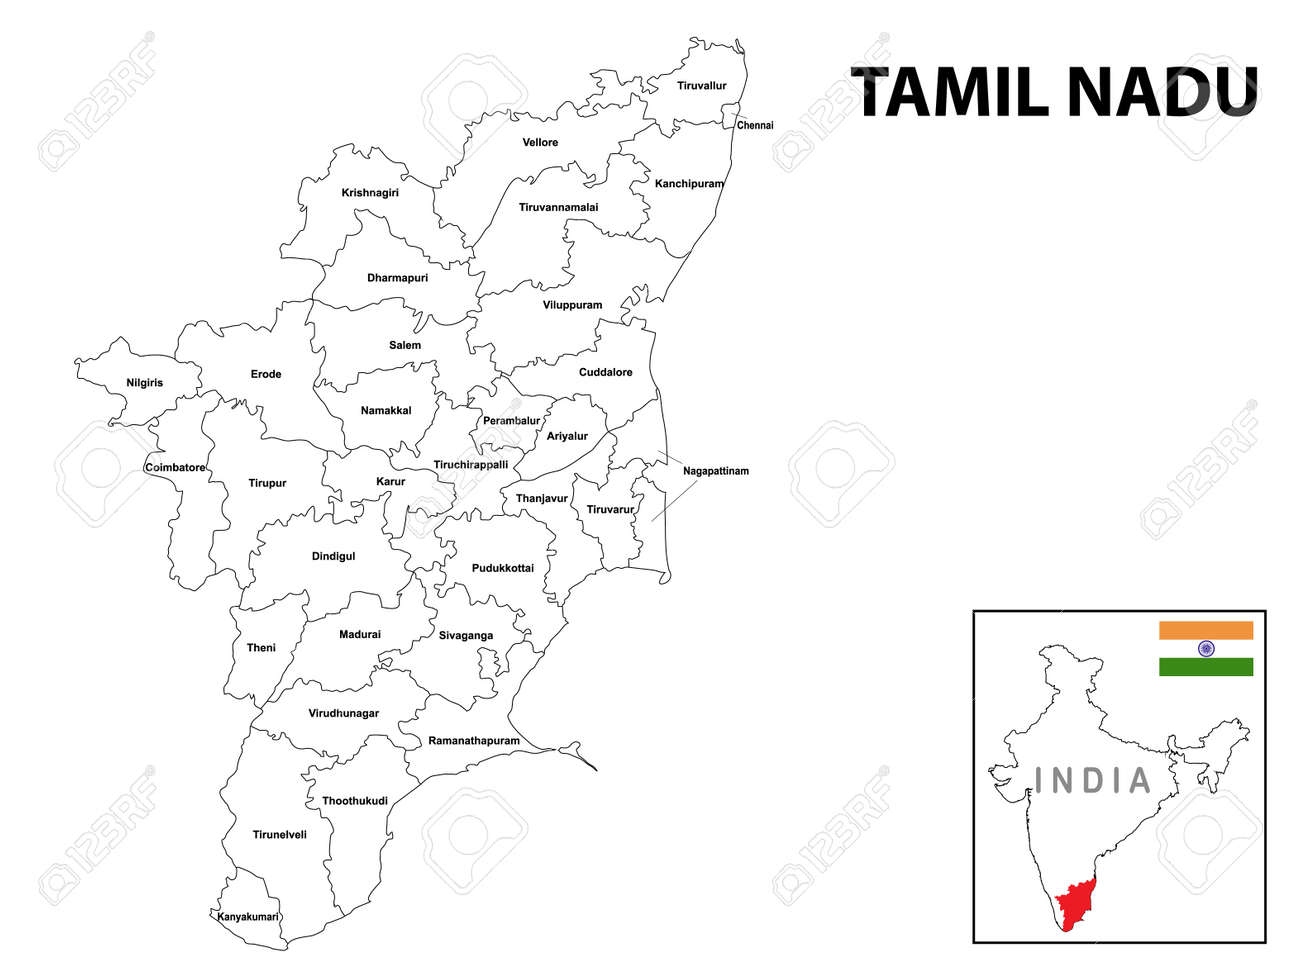 Tamil nadu map. District ways map of tamil nadu with name. Vector illustration of Tamilnadu geographical map. New and original design with showing border line and name. - 168900302